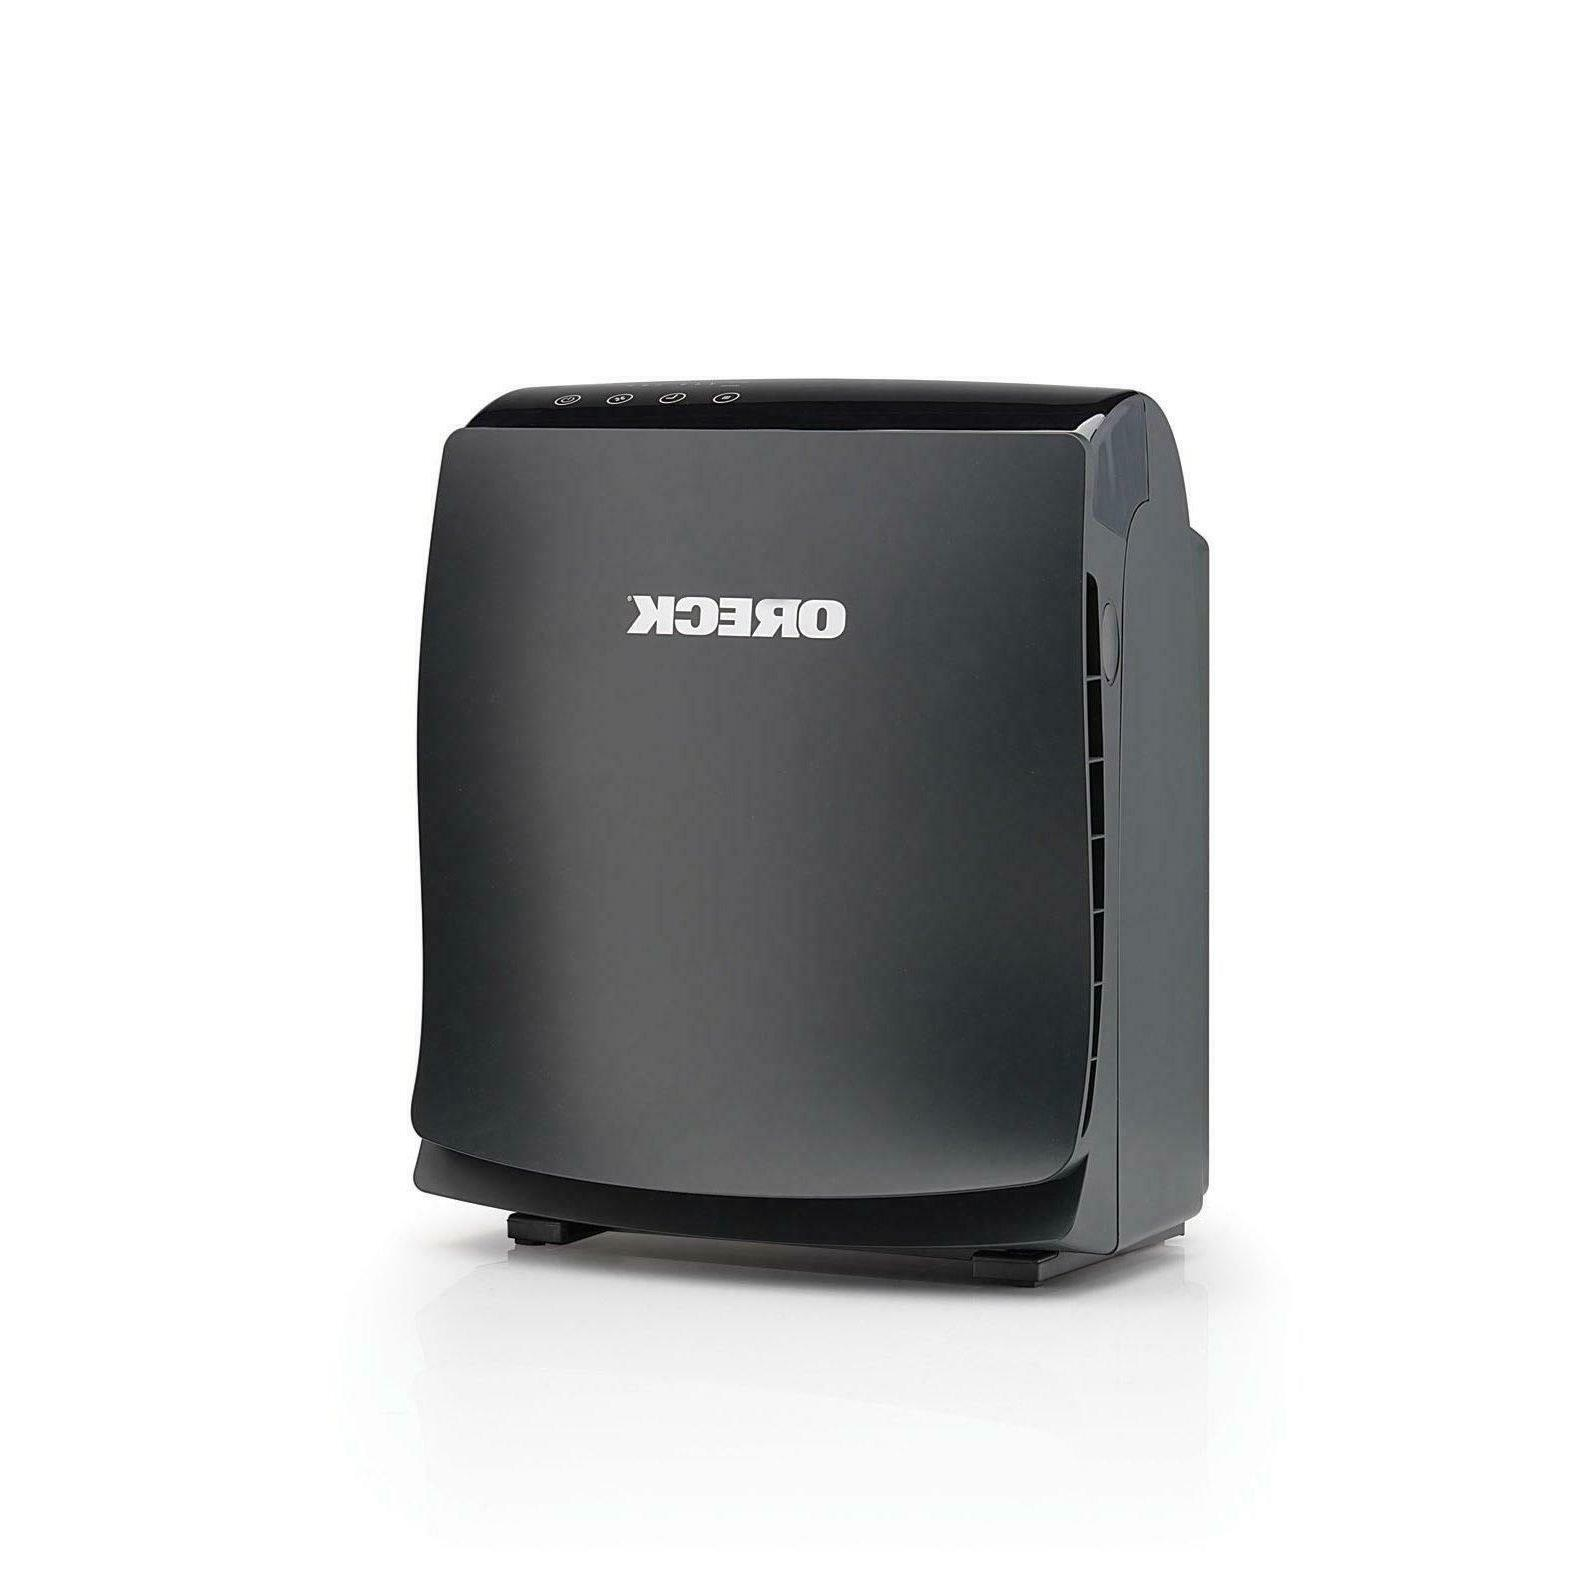 Oreck HEPA Air Purifier,